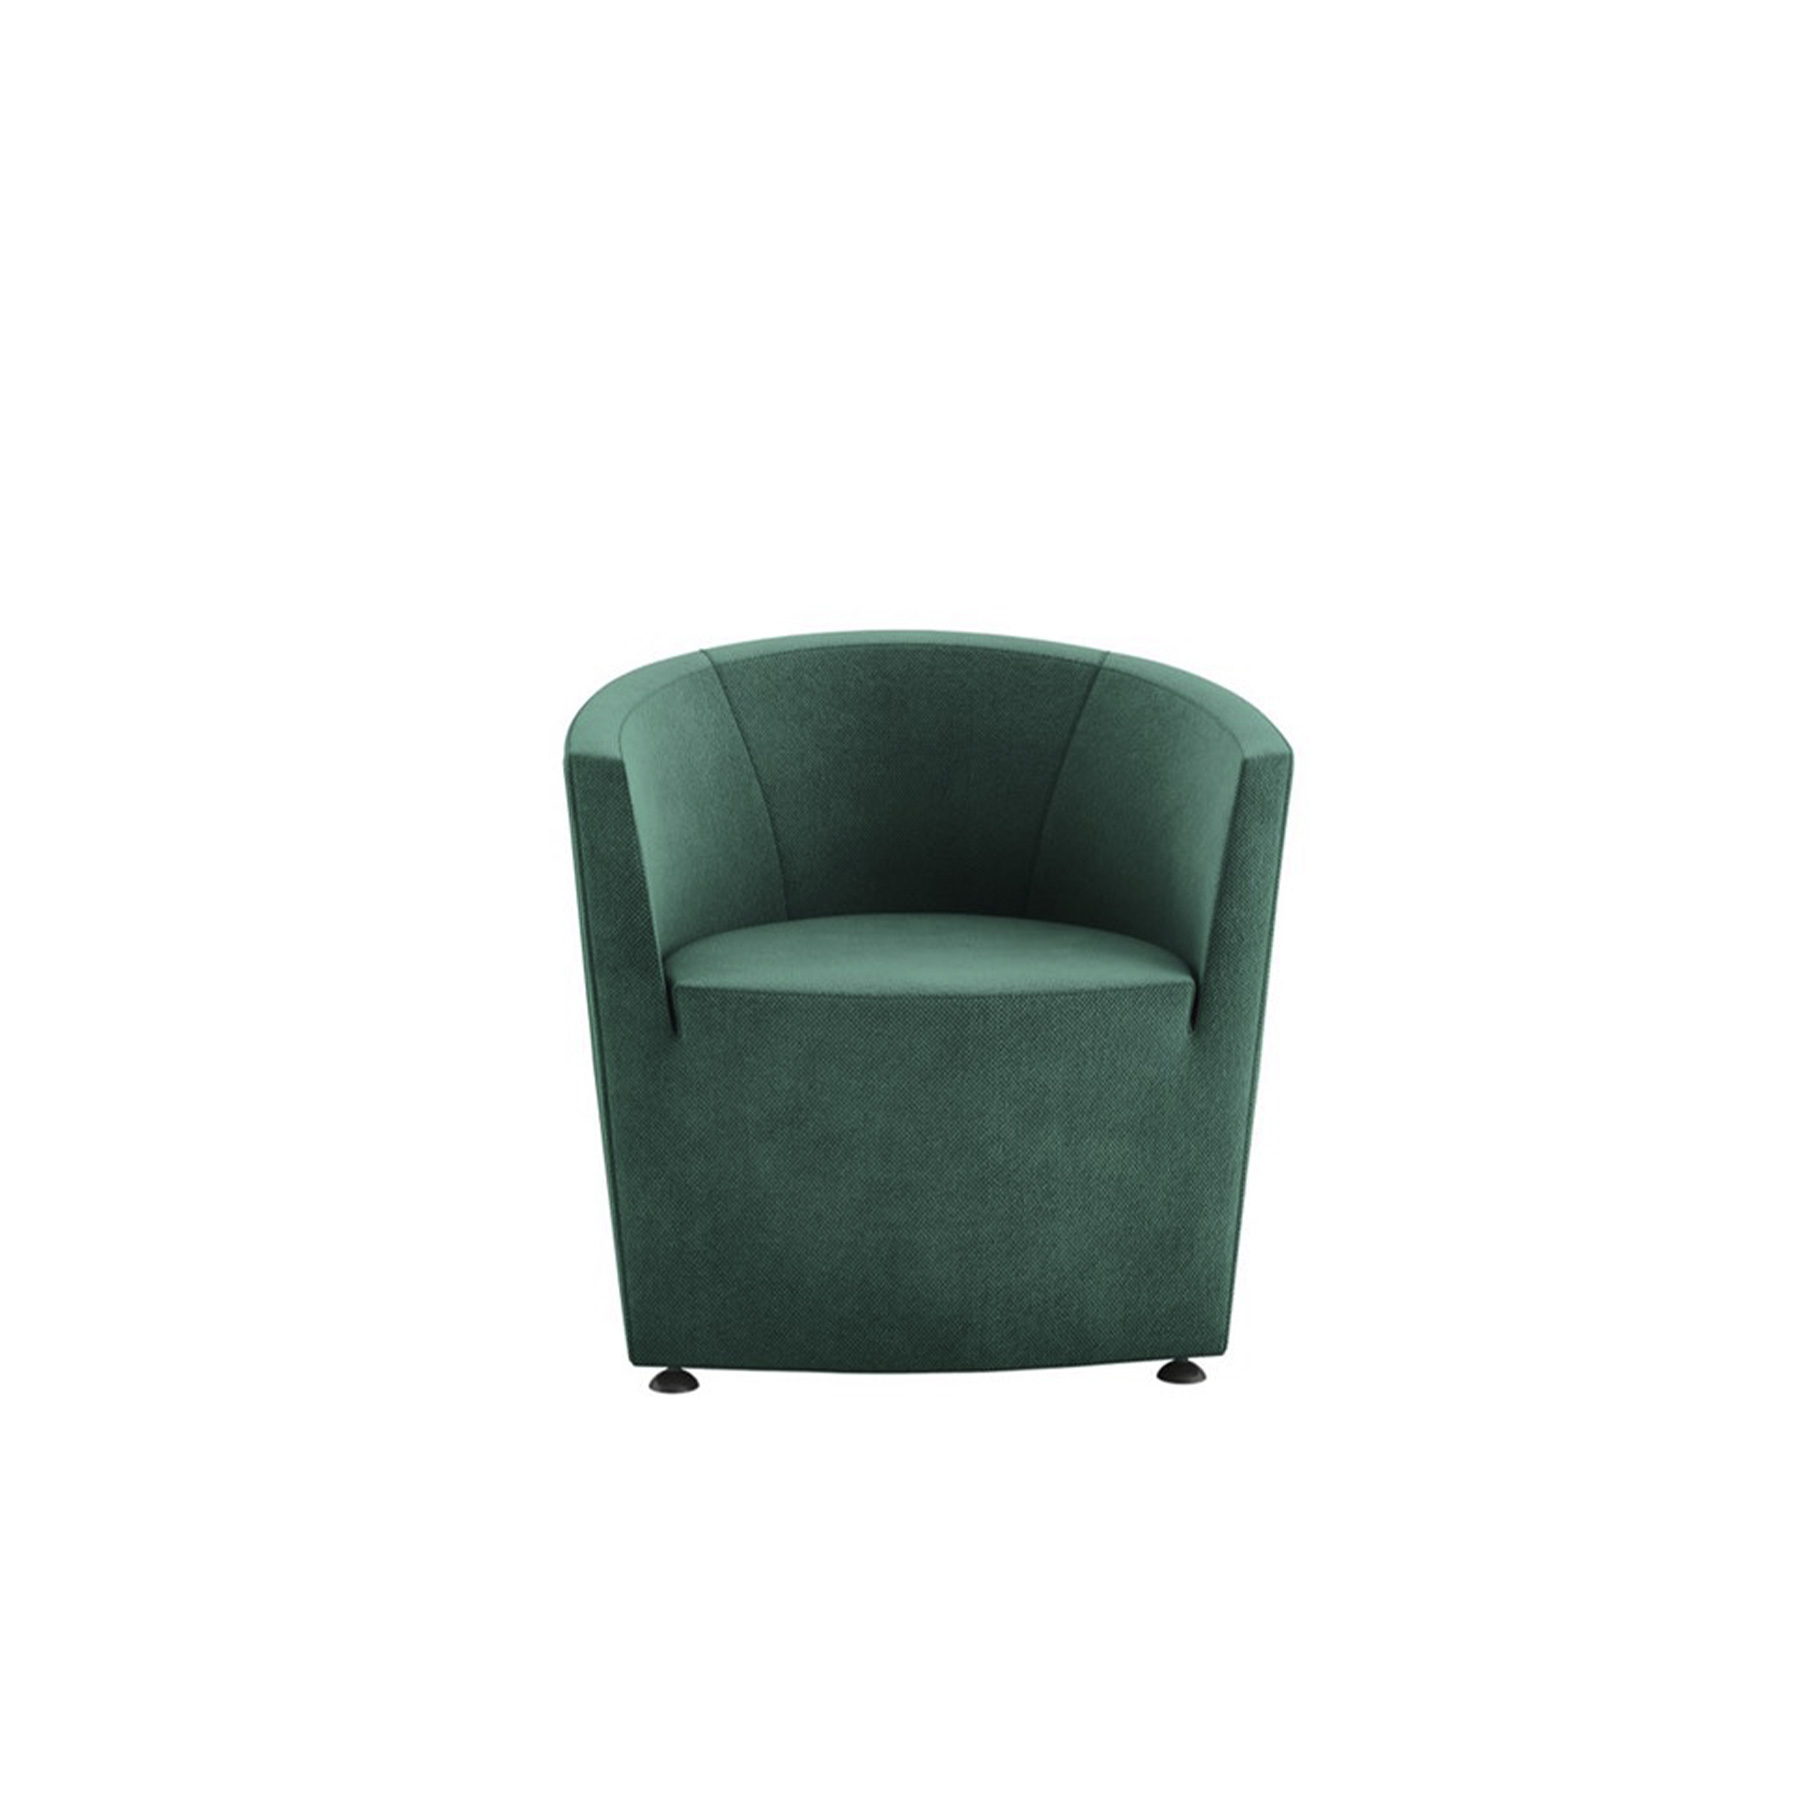 Parentesi Lounge Armchair - Its name means parenthesis: a simple, effective description of this collection, with its clean, essential, curved lines.‎ The armchair revisits a classic, cosy shape with the versatility to fit into any setting or composition, while the sofa is conceived as a complement to the chair.‎ Available in fully upholstered or aluminium backrest.